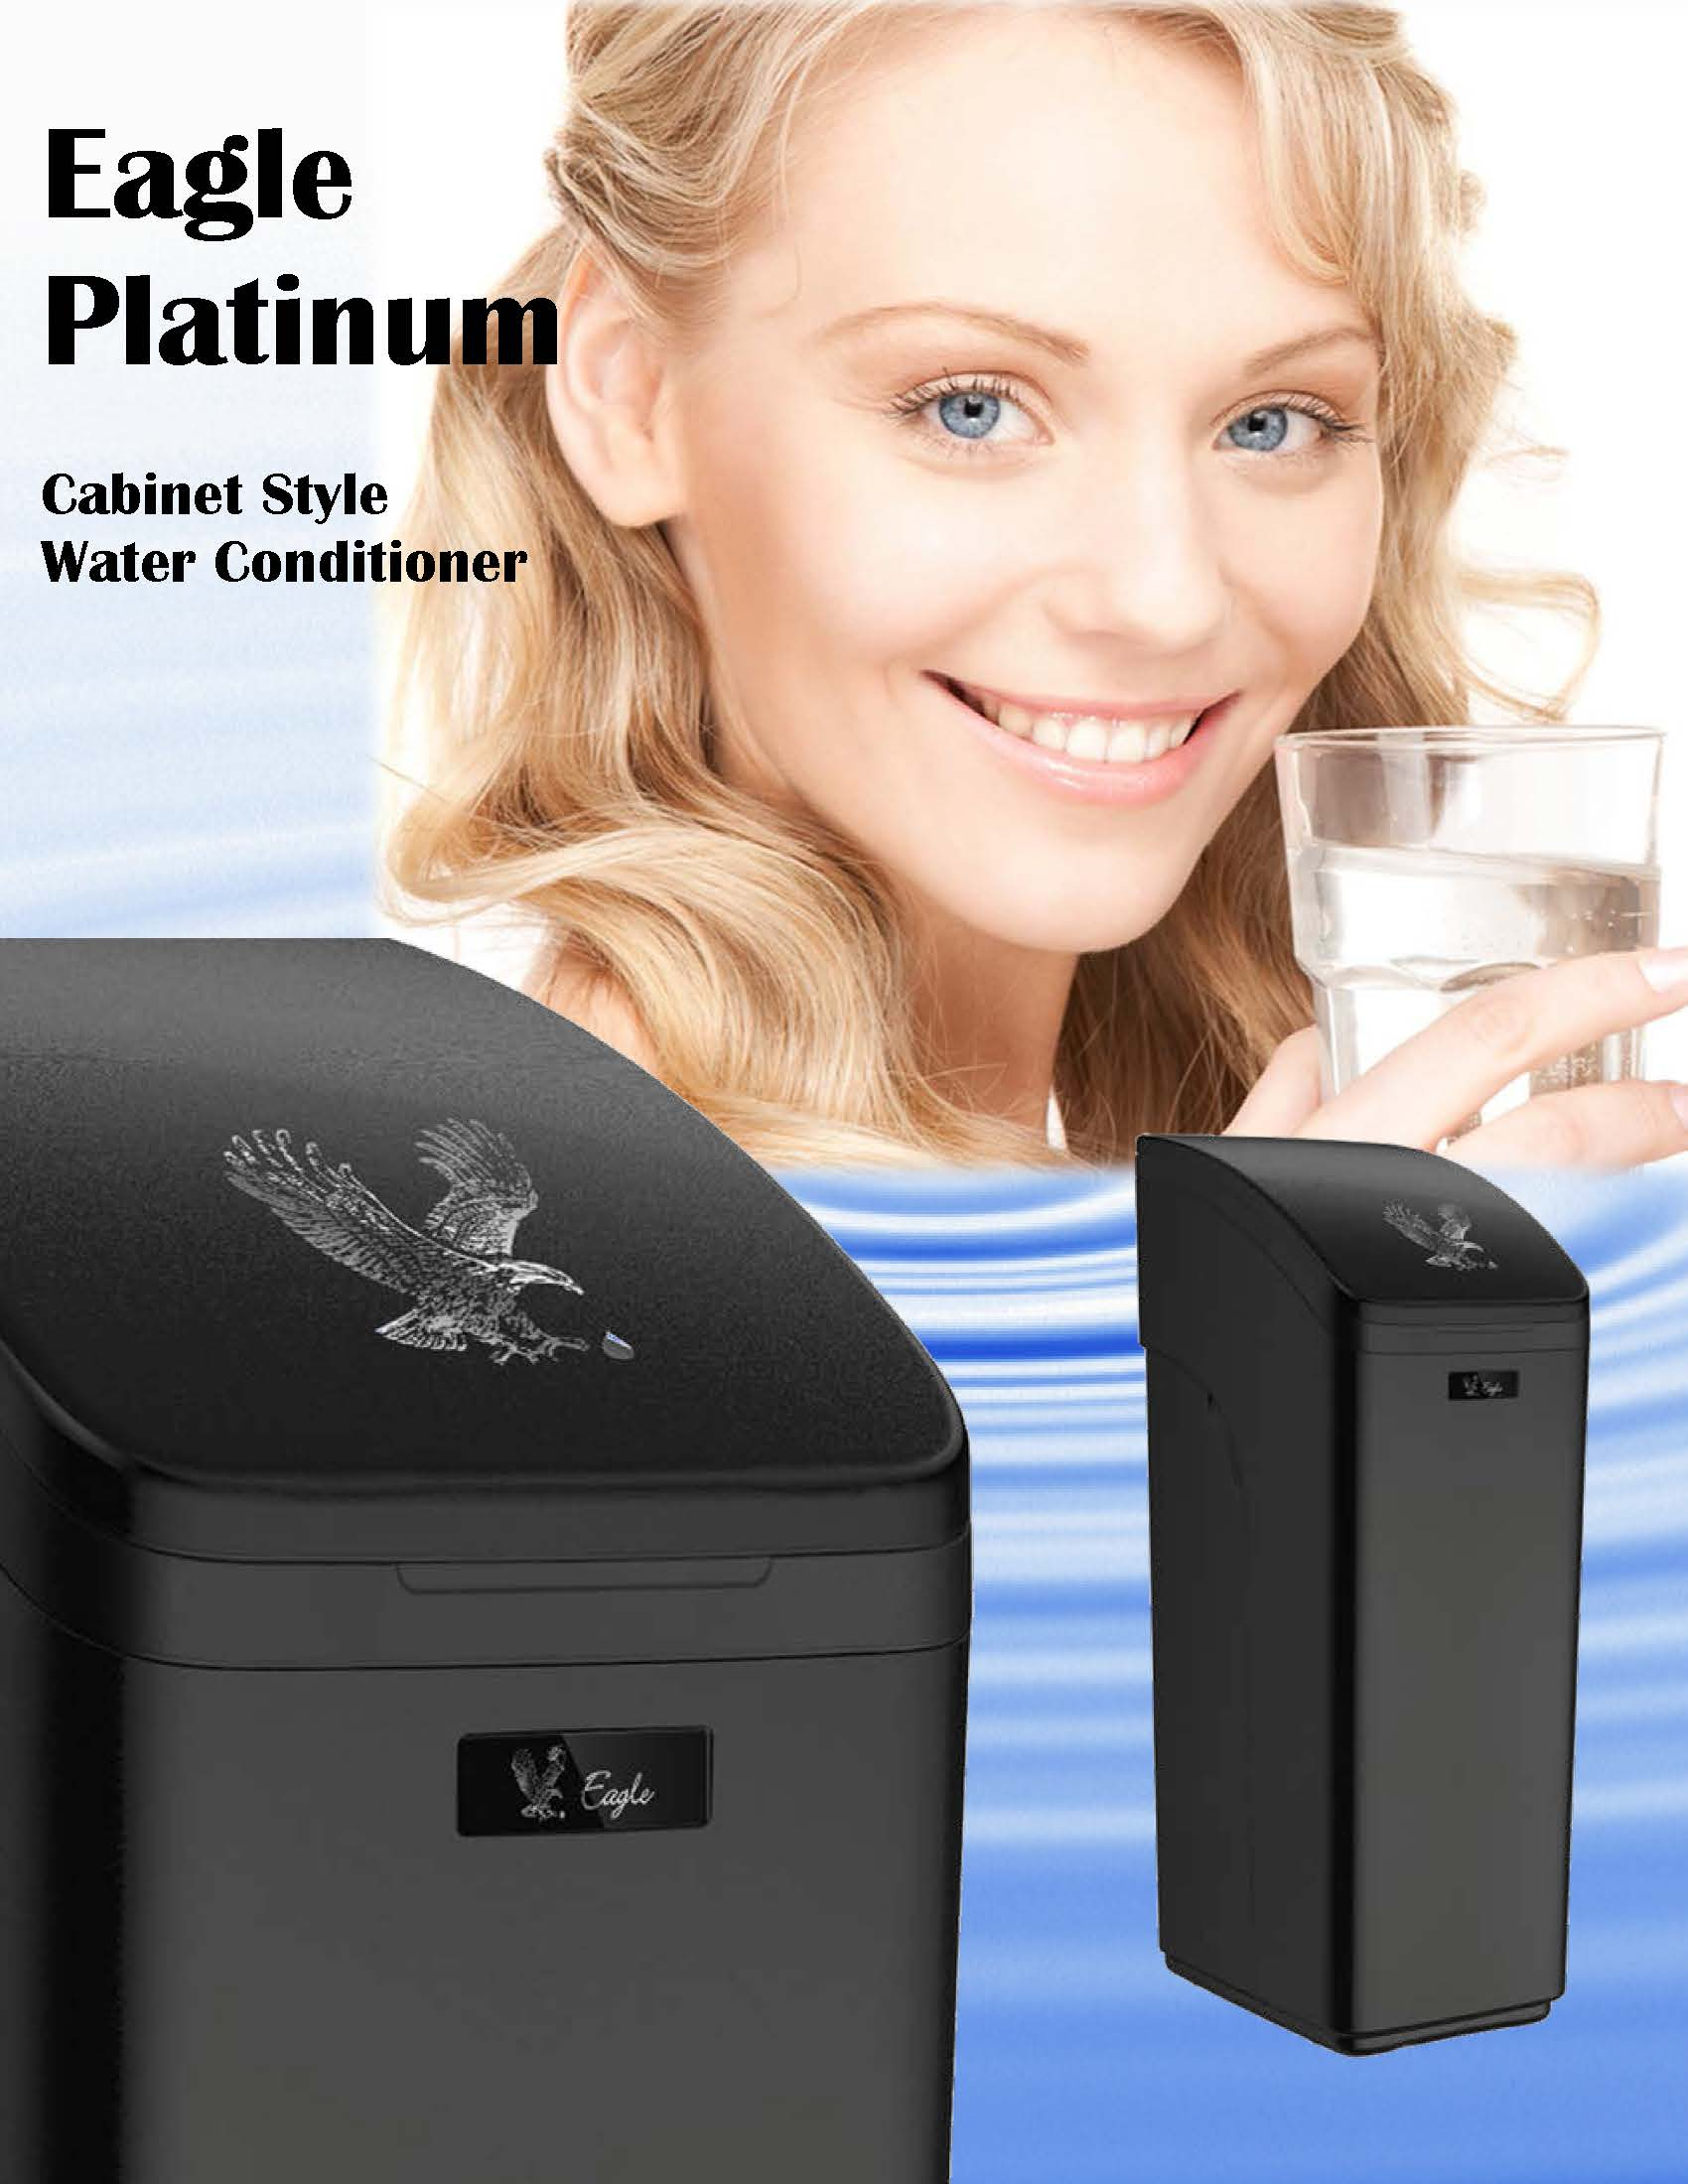 Home Water Conditioner Eagle Platinum Whole Home Water Conditioner Soft Clean Truly